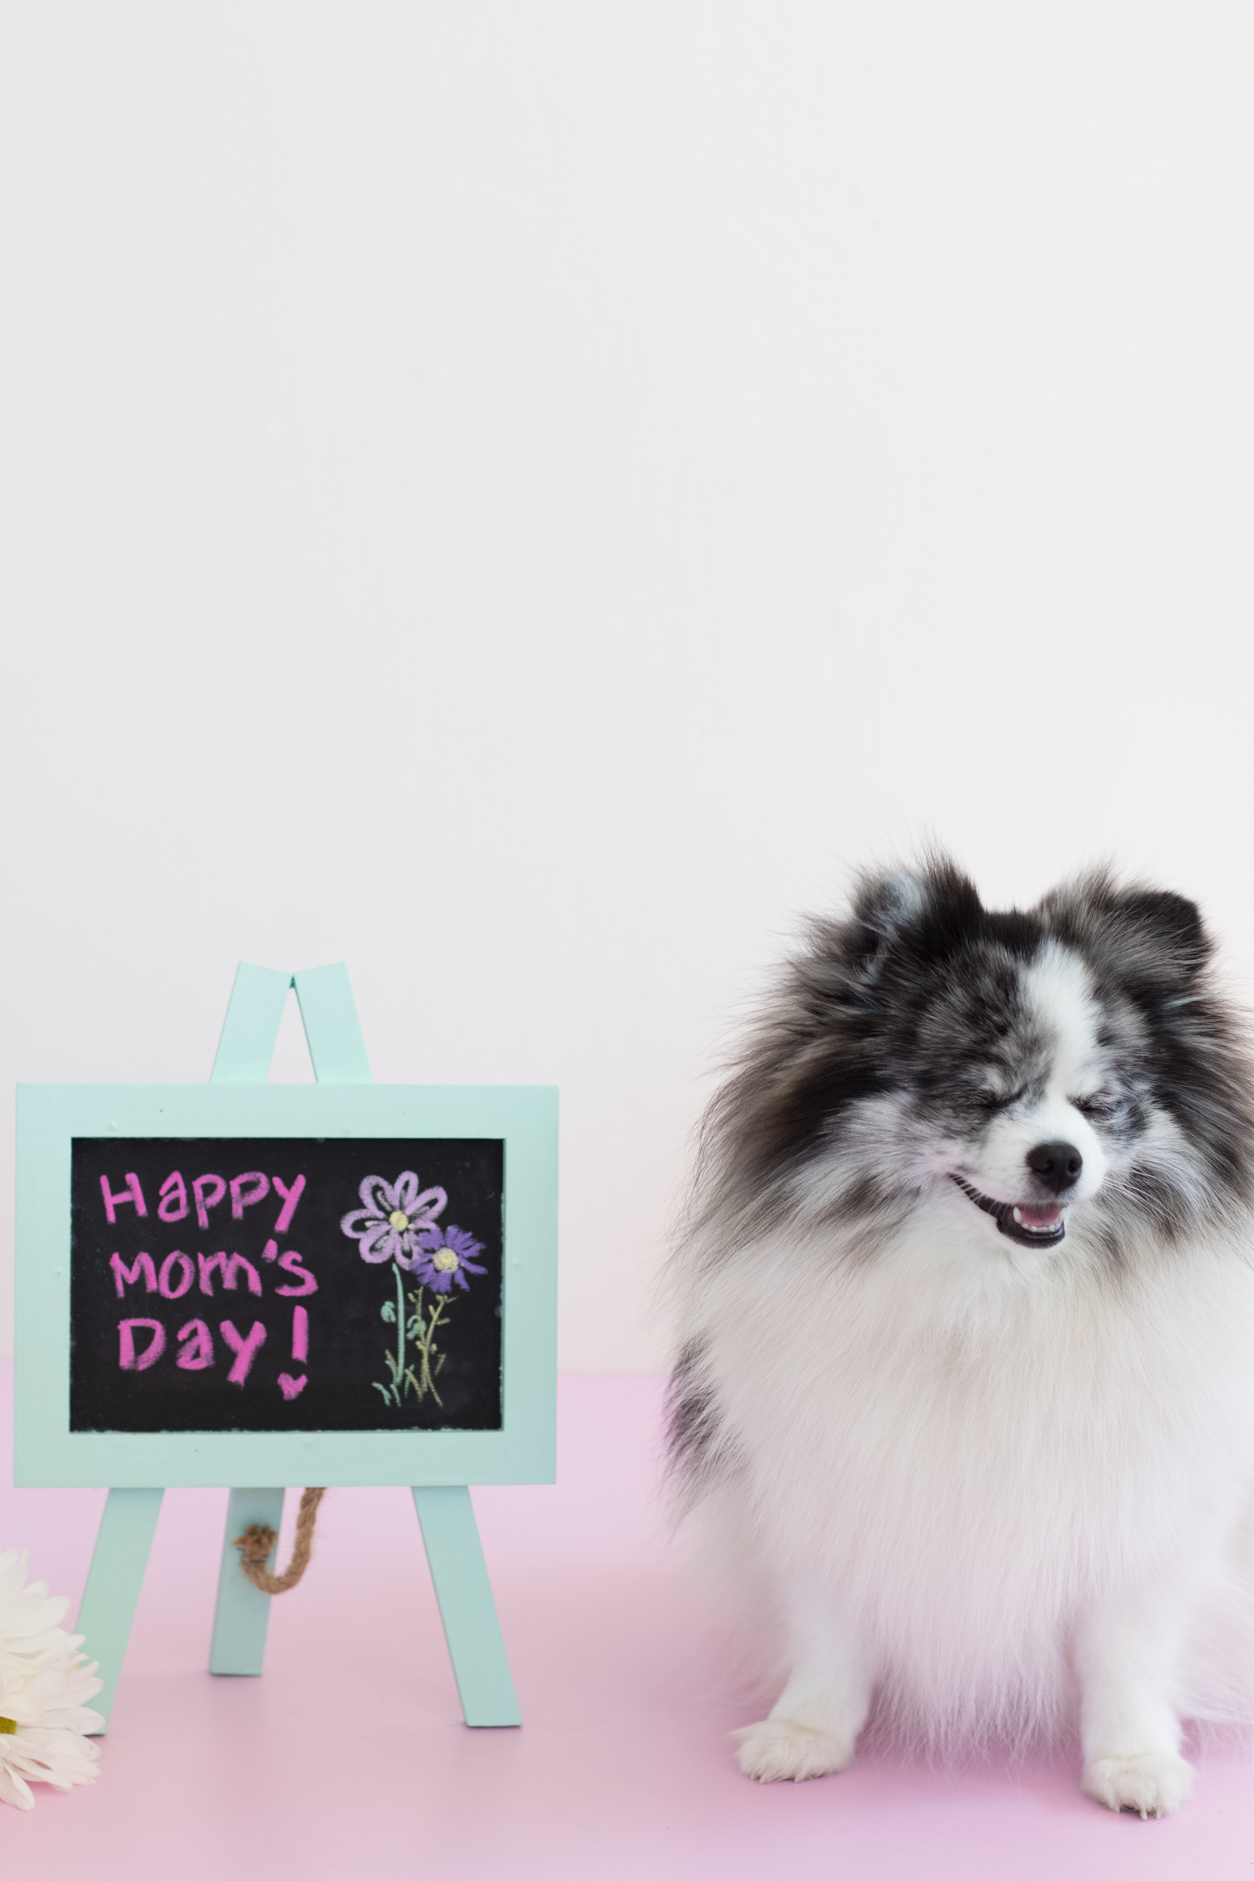 Happy Mother's Day_minty_sneeze_joyfetti.com